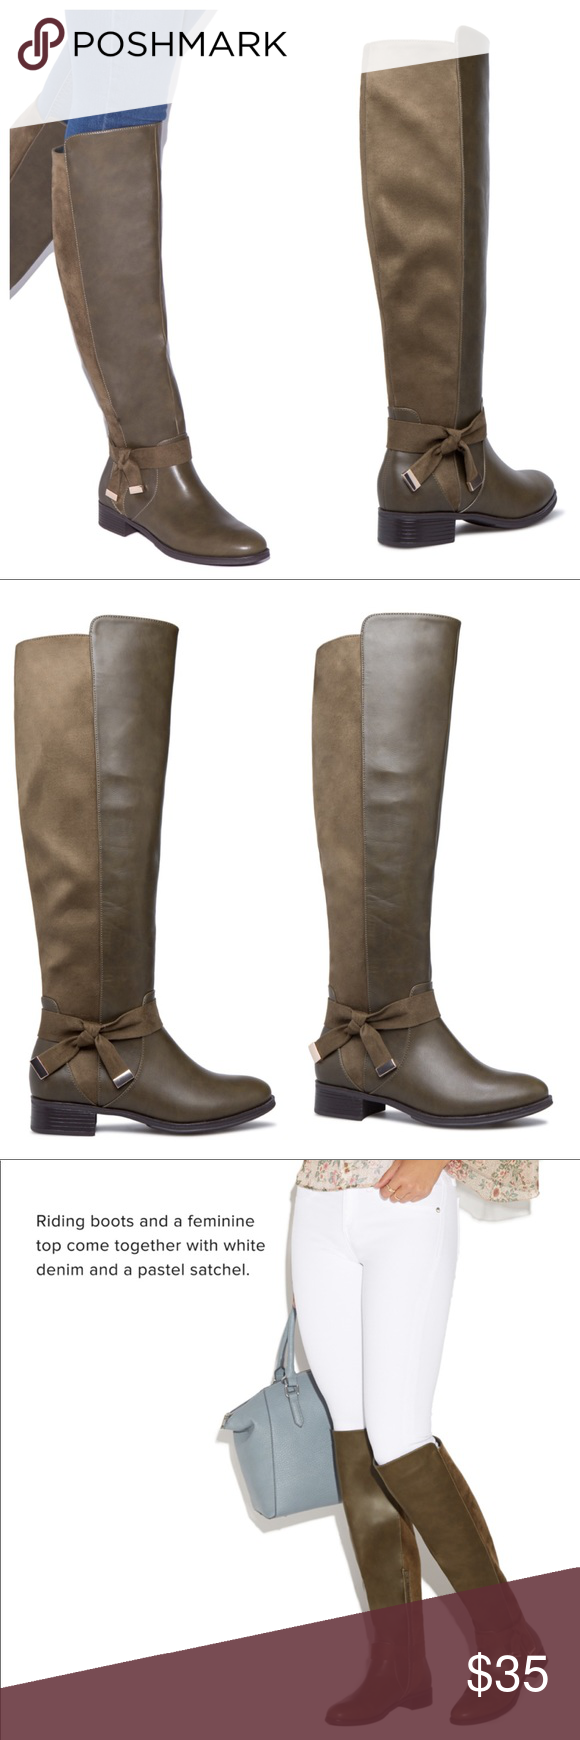 Olive Green Over The Knee Riding Boots